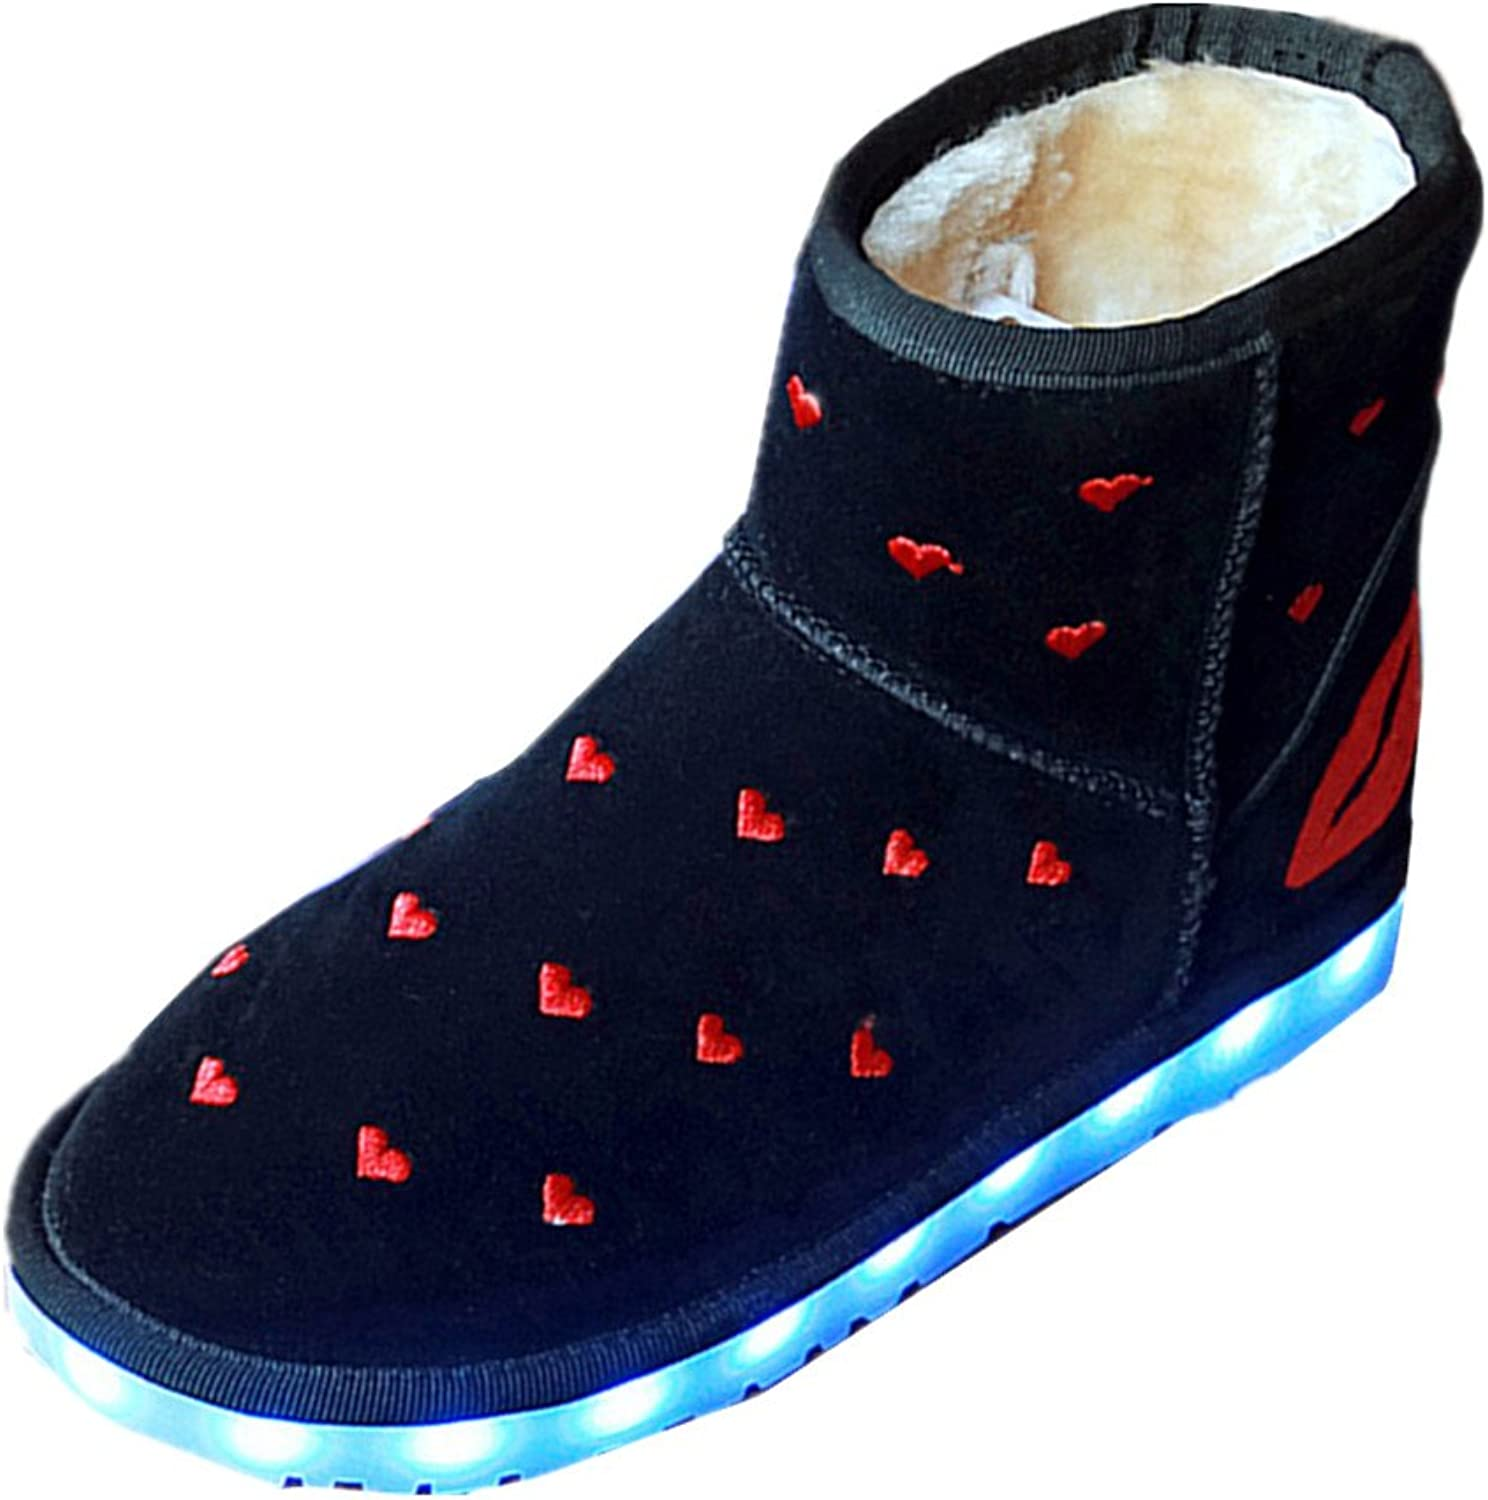 Xiaoyang Winter Snow Boots USB Charge Keep Warm Women Boots Fashion Plush LED Luminous Boots